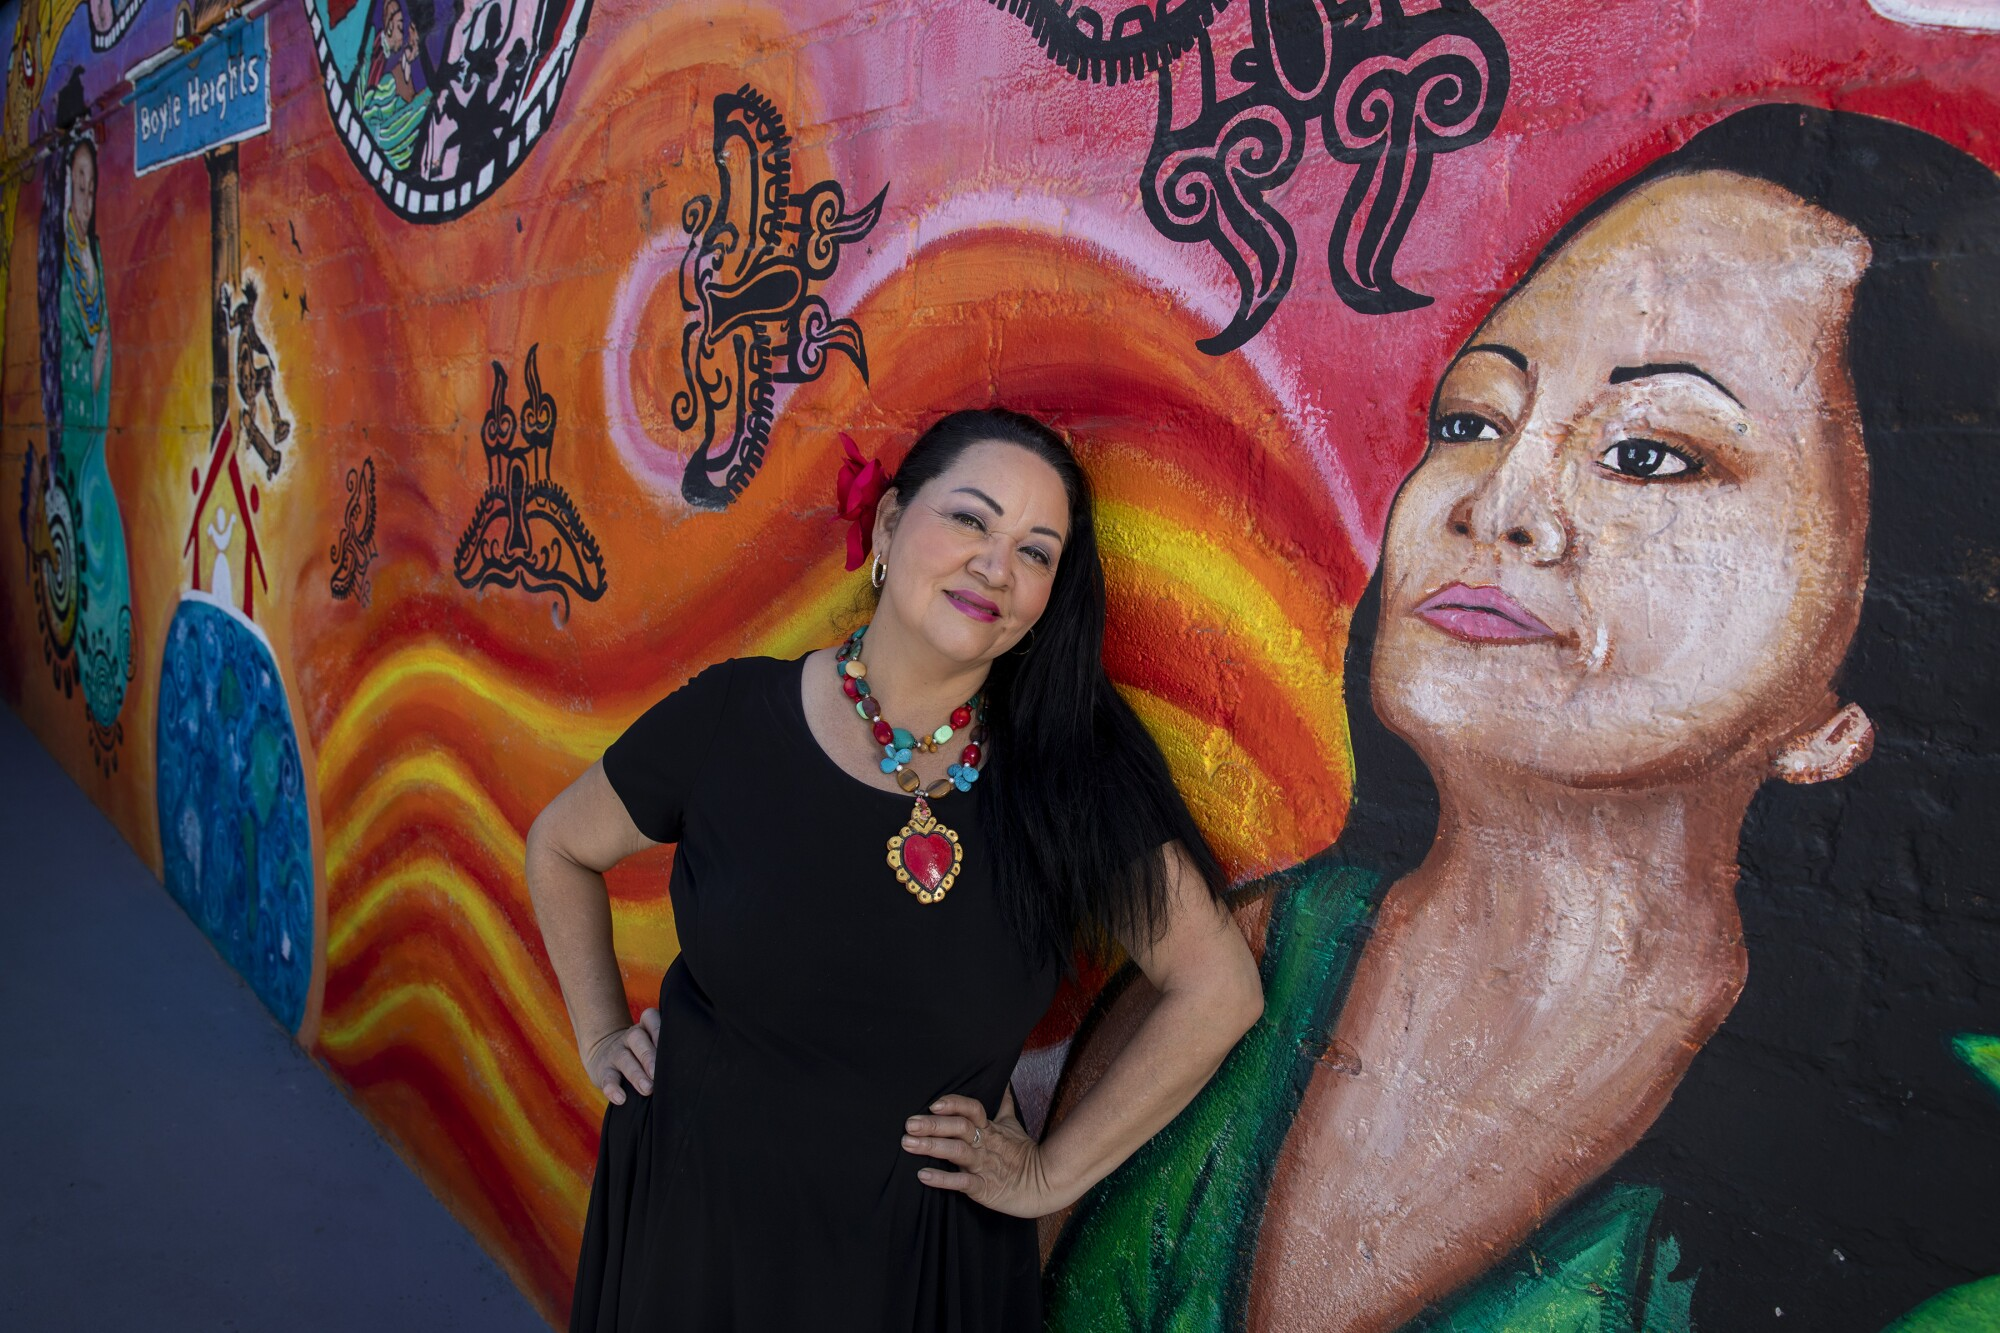 Founding artistic director Josefina Lopez sits outside Casa 0101 with a mural of herself July 31, 2021 in Boyle Heights